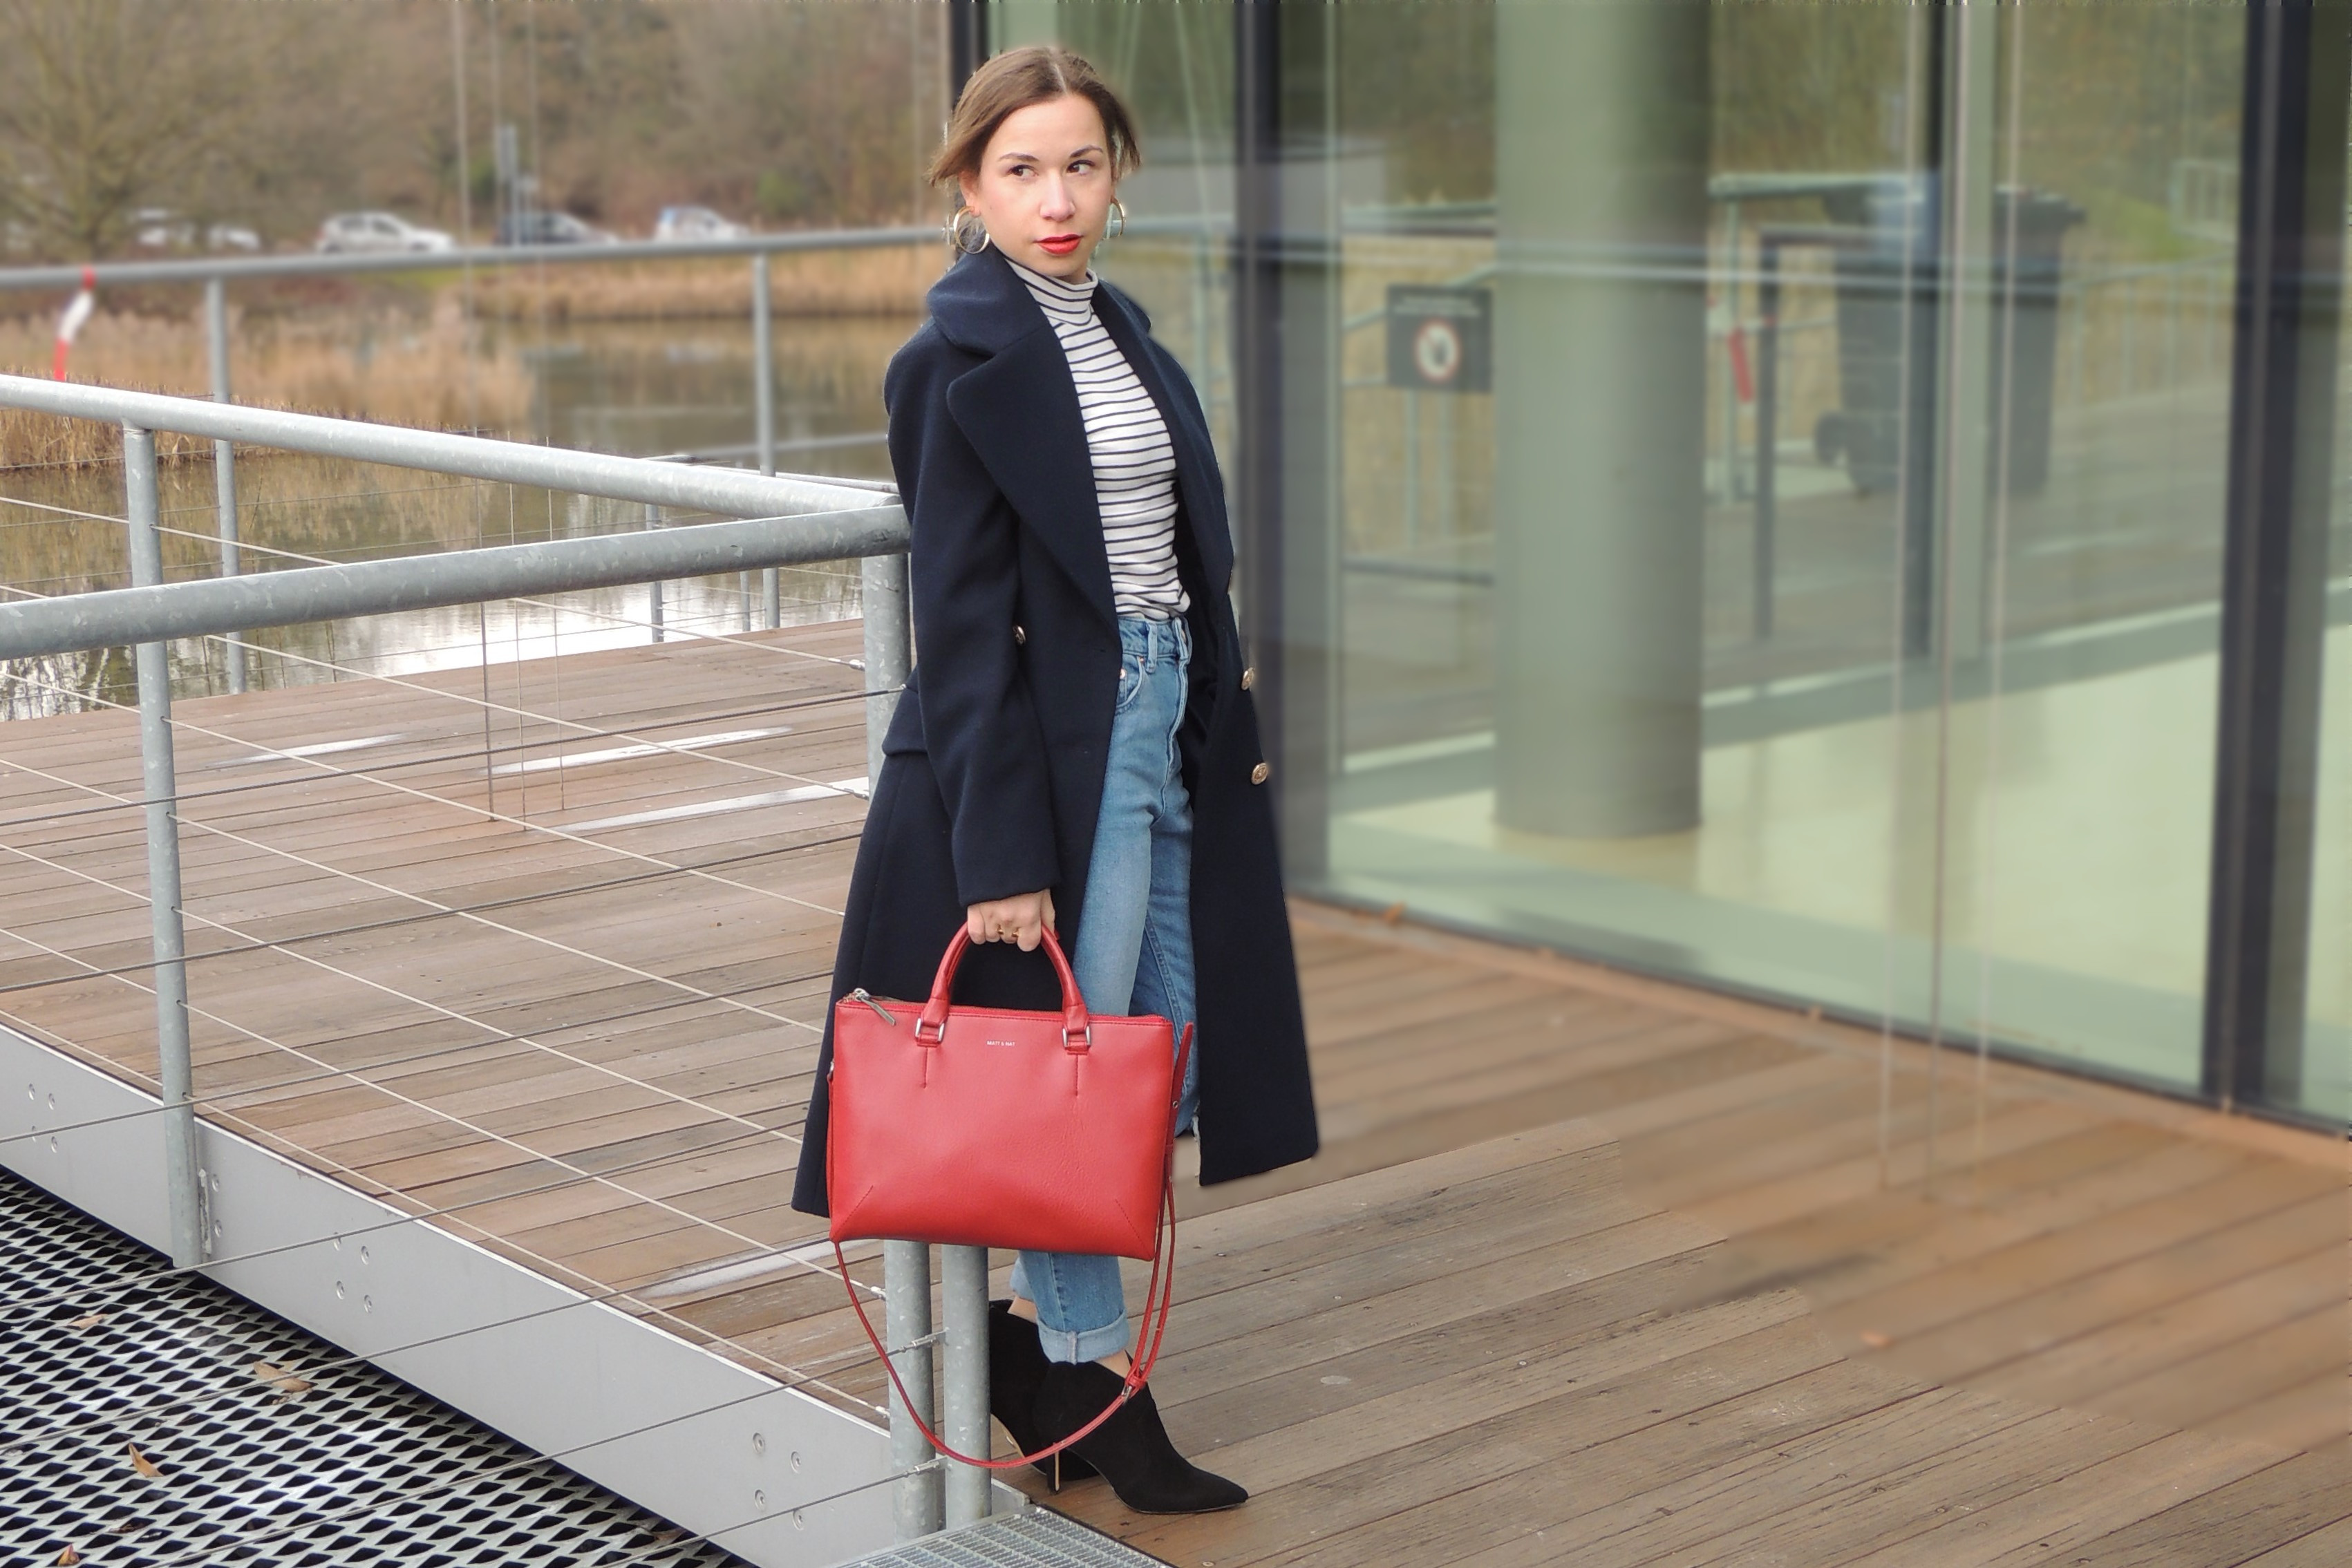 liebe-was-ist-fashionblog-dusseldorf-petite-fashion-januar-blues-uniform-military-coat-trend-lookbook-advic-2